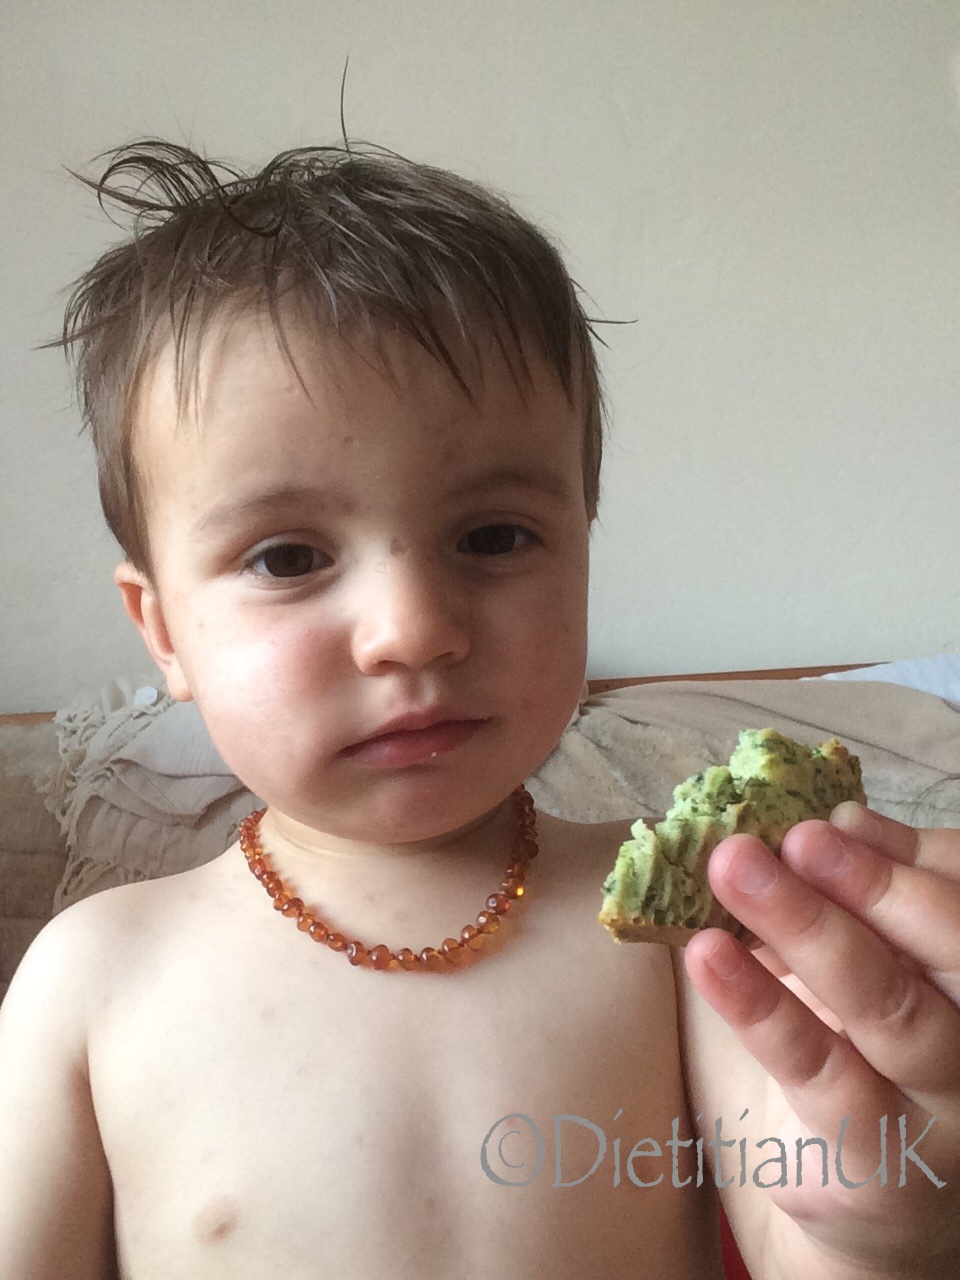 Dietitian UK: Jboy with Spinach Muffin